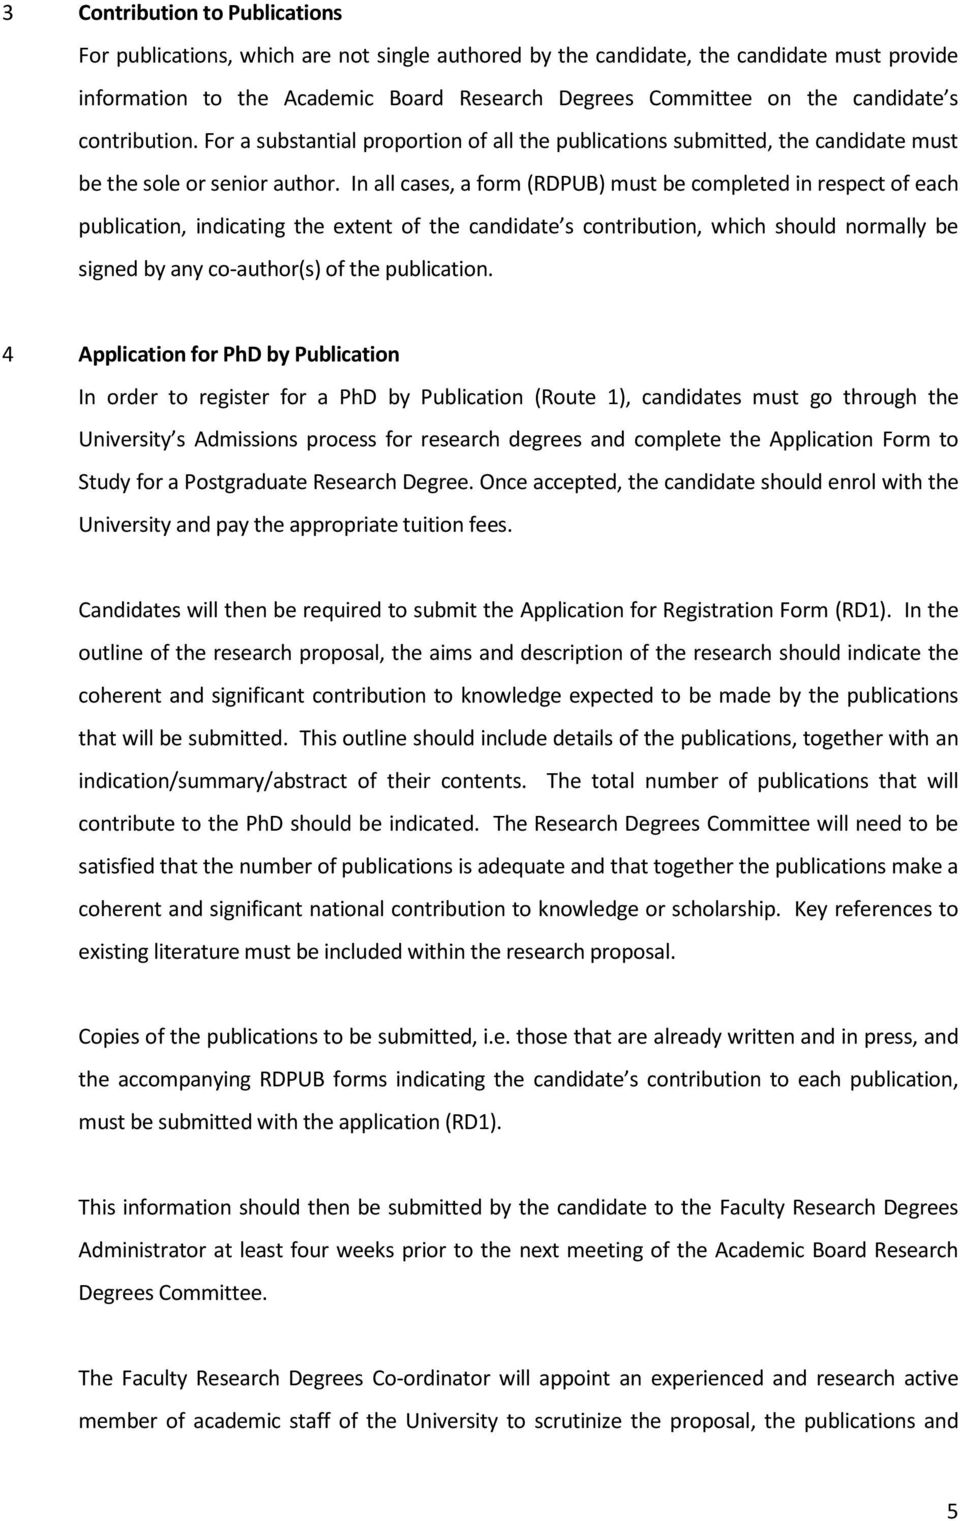 In all cases, a form (RDPUB) must be completed in respect of each publication, indicating the extent of the candidate s contribution, which should normally be signed by any co-author(s) of the